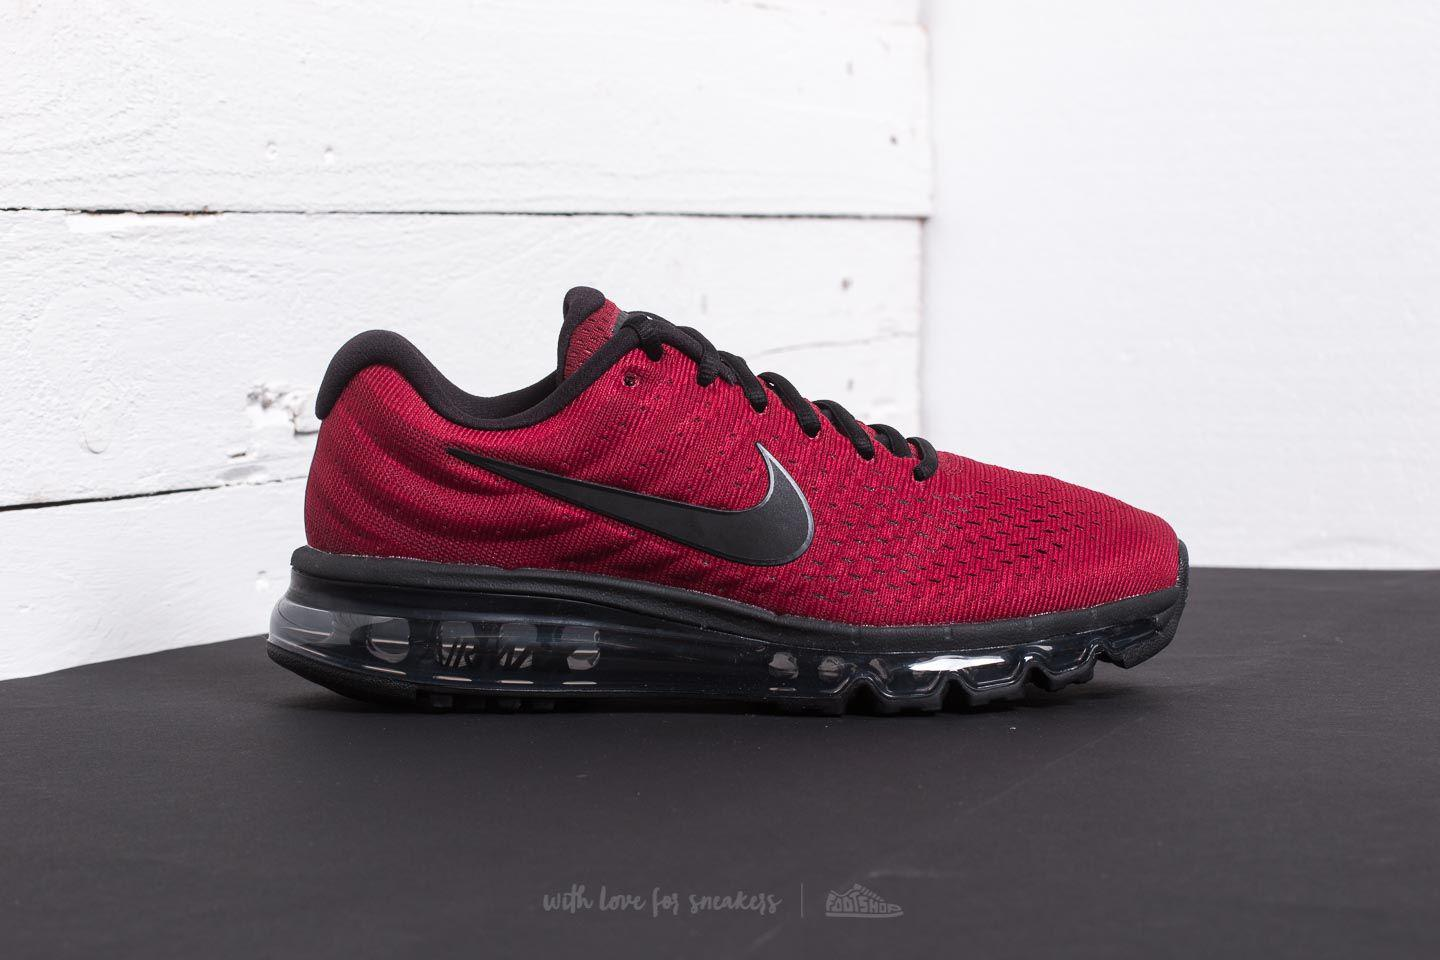 wholesale dealer de876 51908 ... top quality lyst nike air max 2017 team red black dark grey in red for  men ...